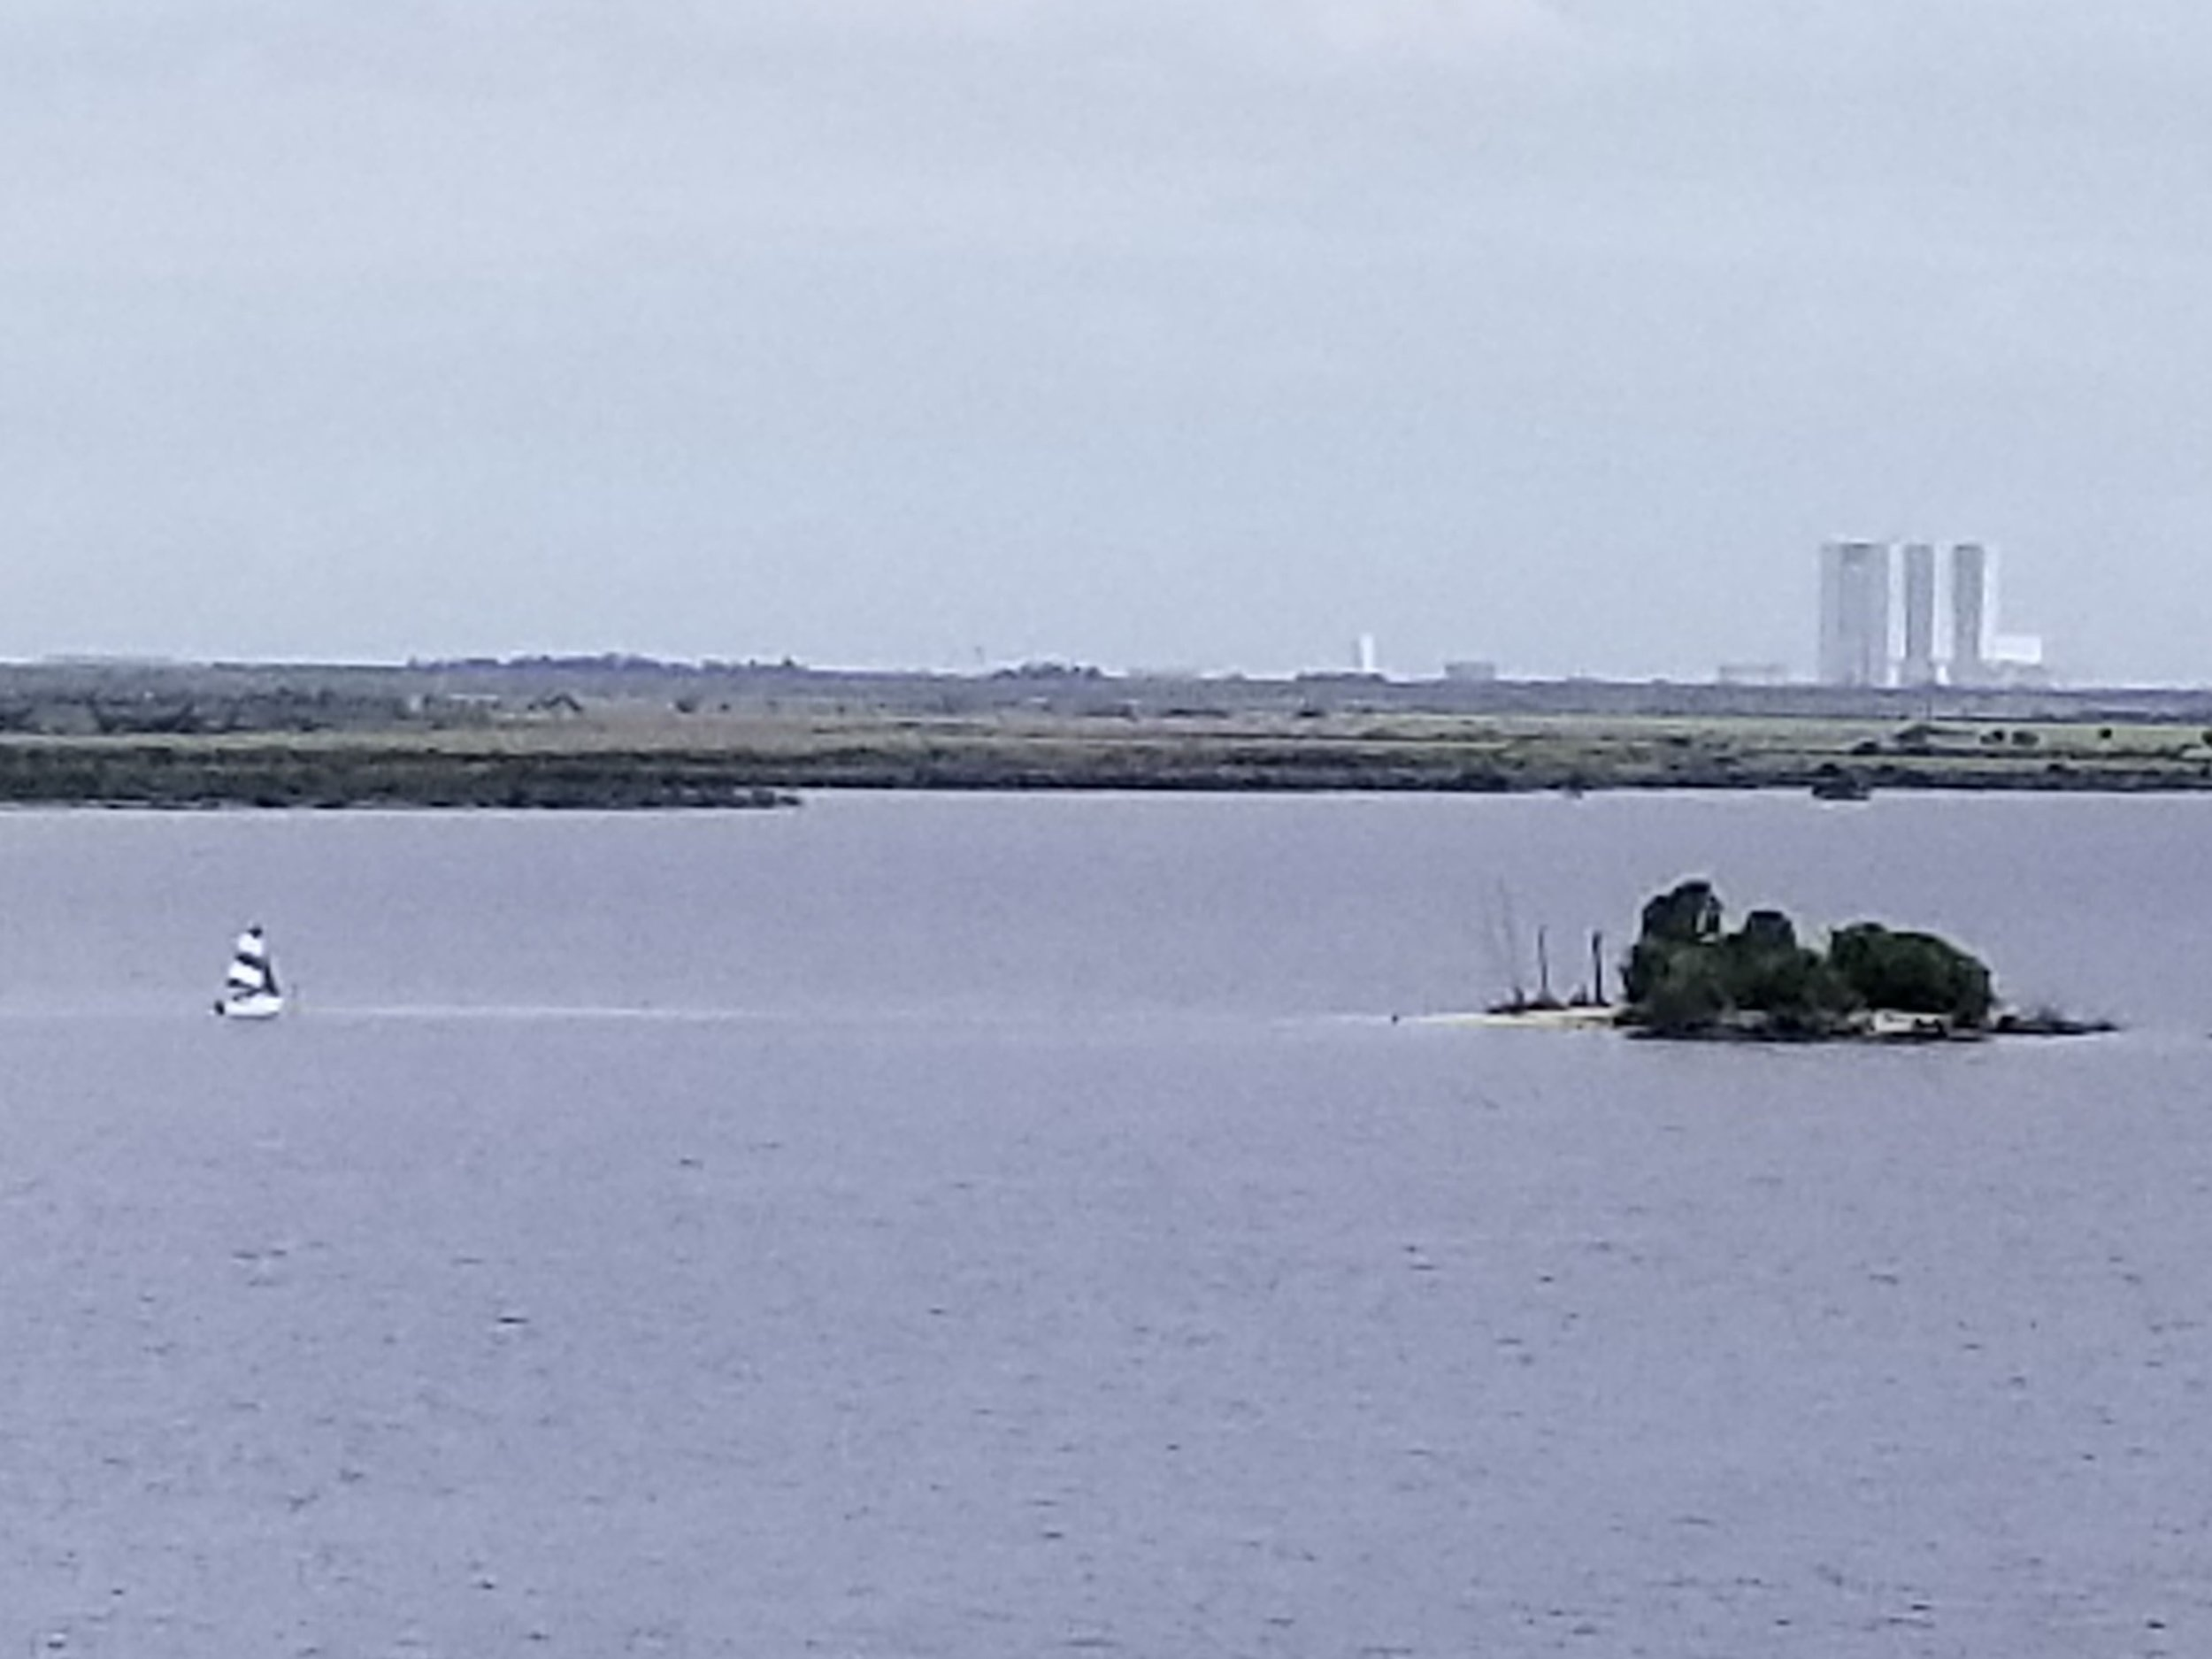 A tiny sailboat out for day-tripping island adventure.